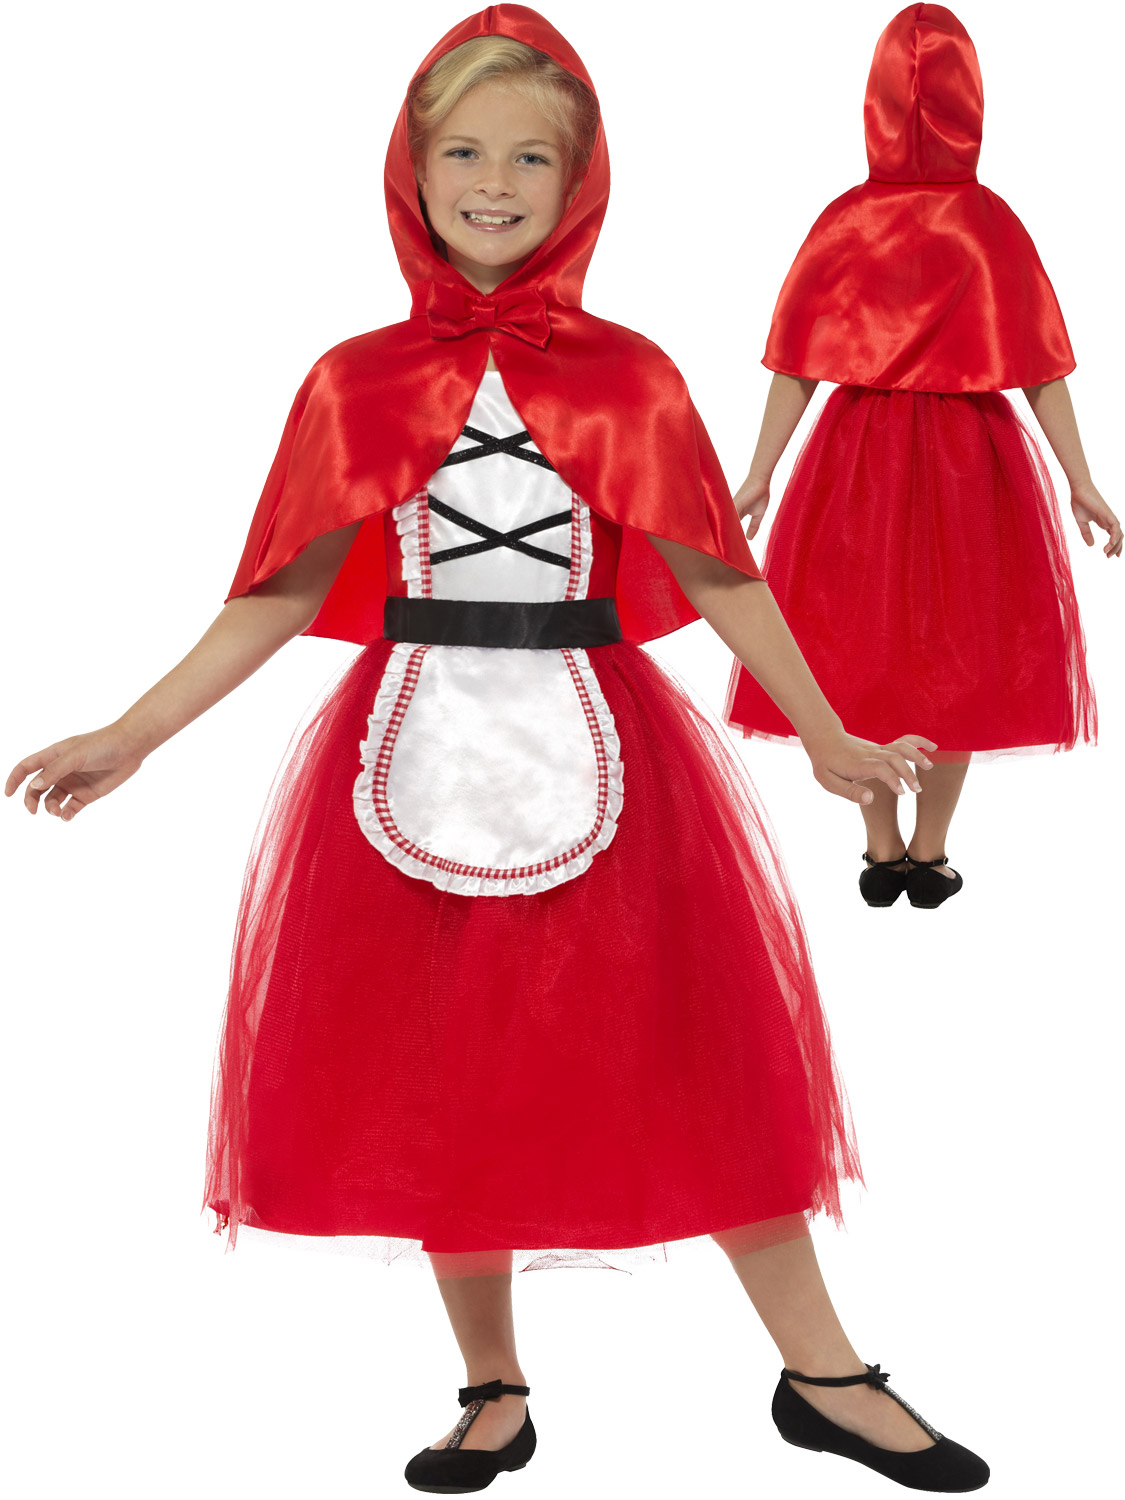 Little Red Riding Hood World Book Day Film Fancy Dress Party Costume Child/'s